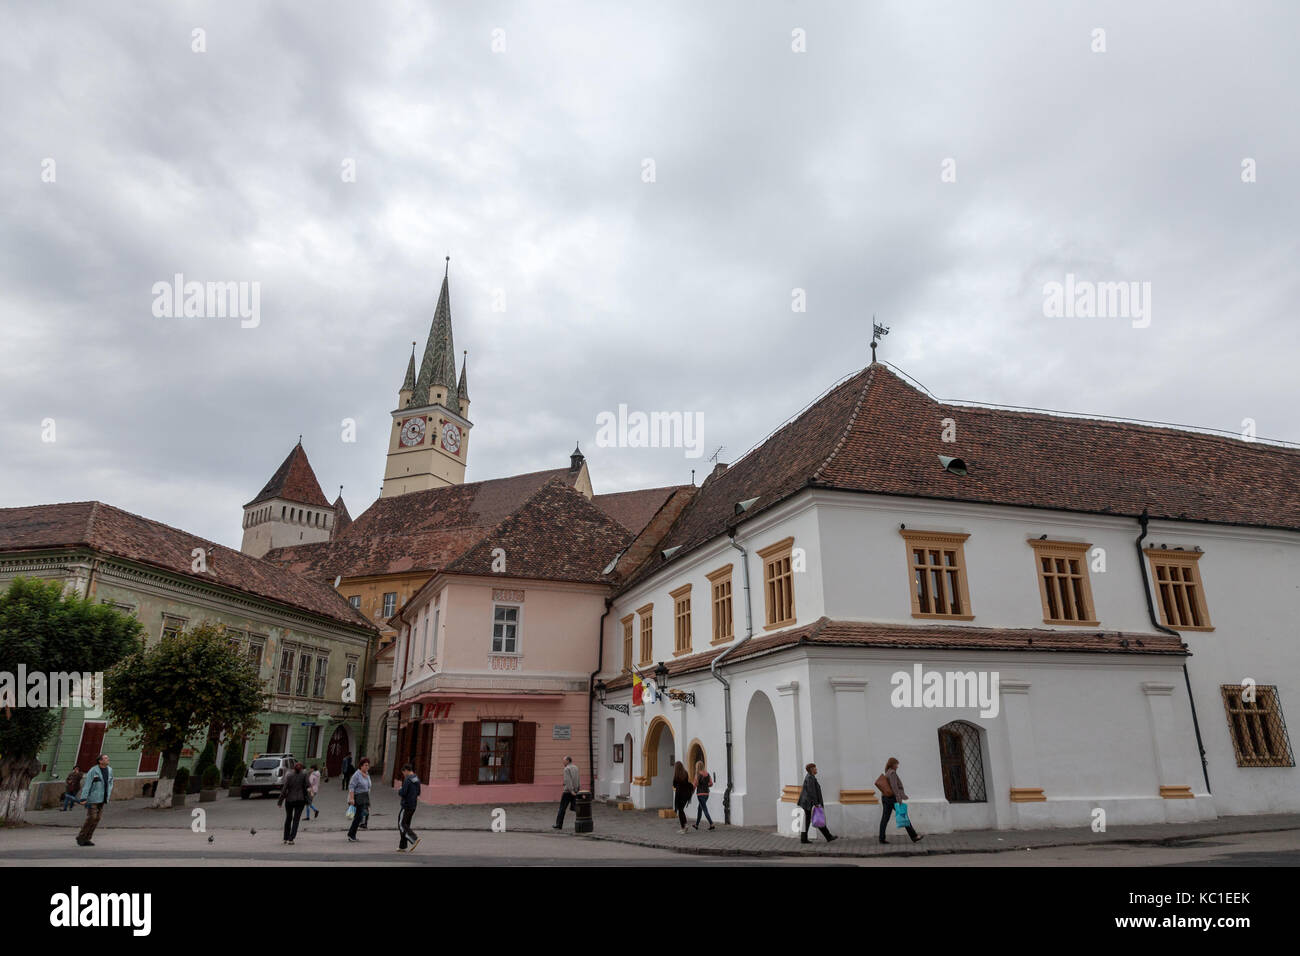 MEDIAS, ROMANIA - SEPTEMBER 22, 2017: Saint Margaret (Sf. Margareta) church in the afternoon seen from the main - Stock Image